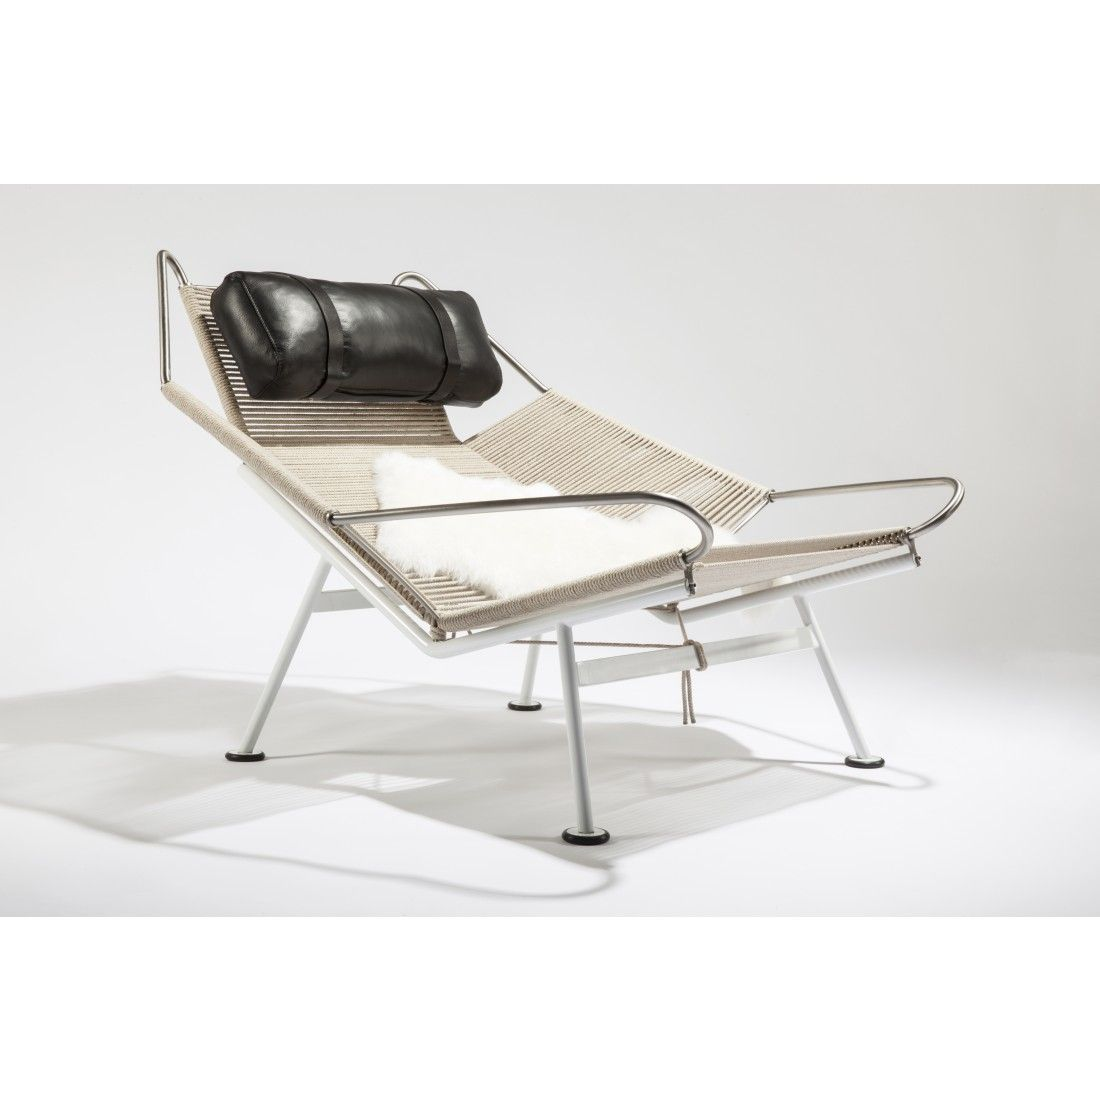 Pp the flag halyard chair halyard and black leather cushion